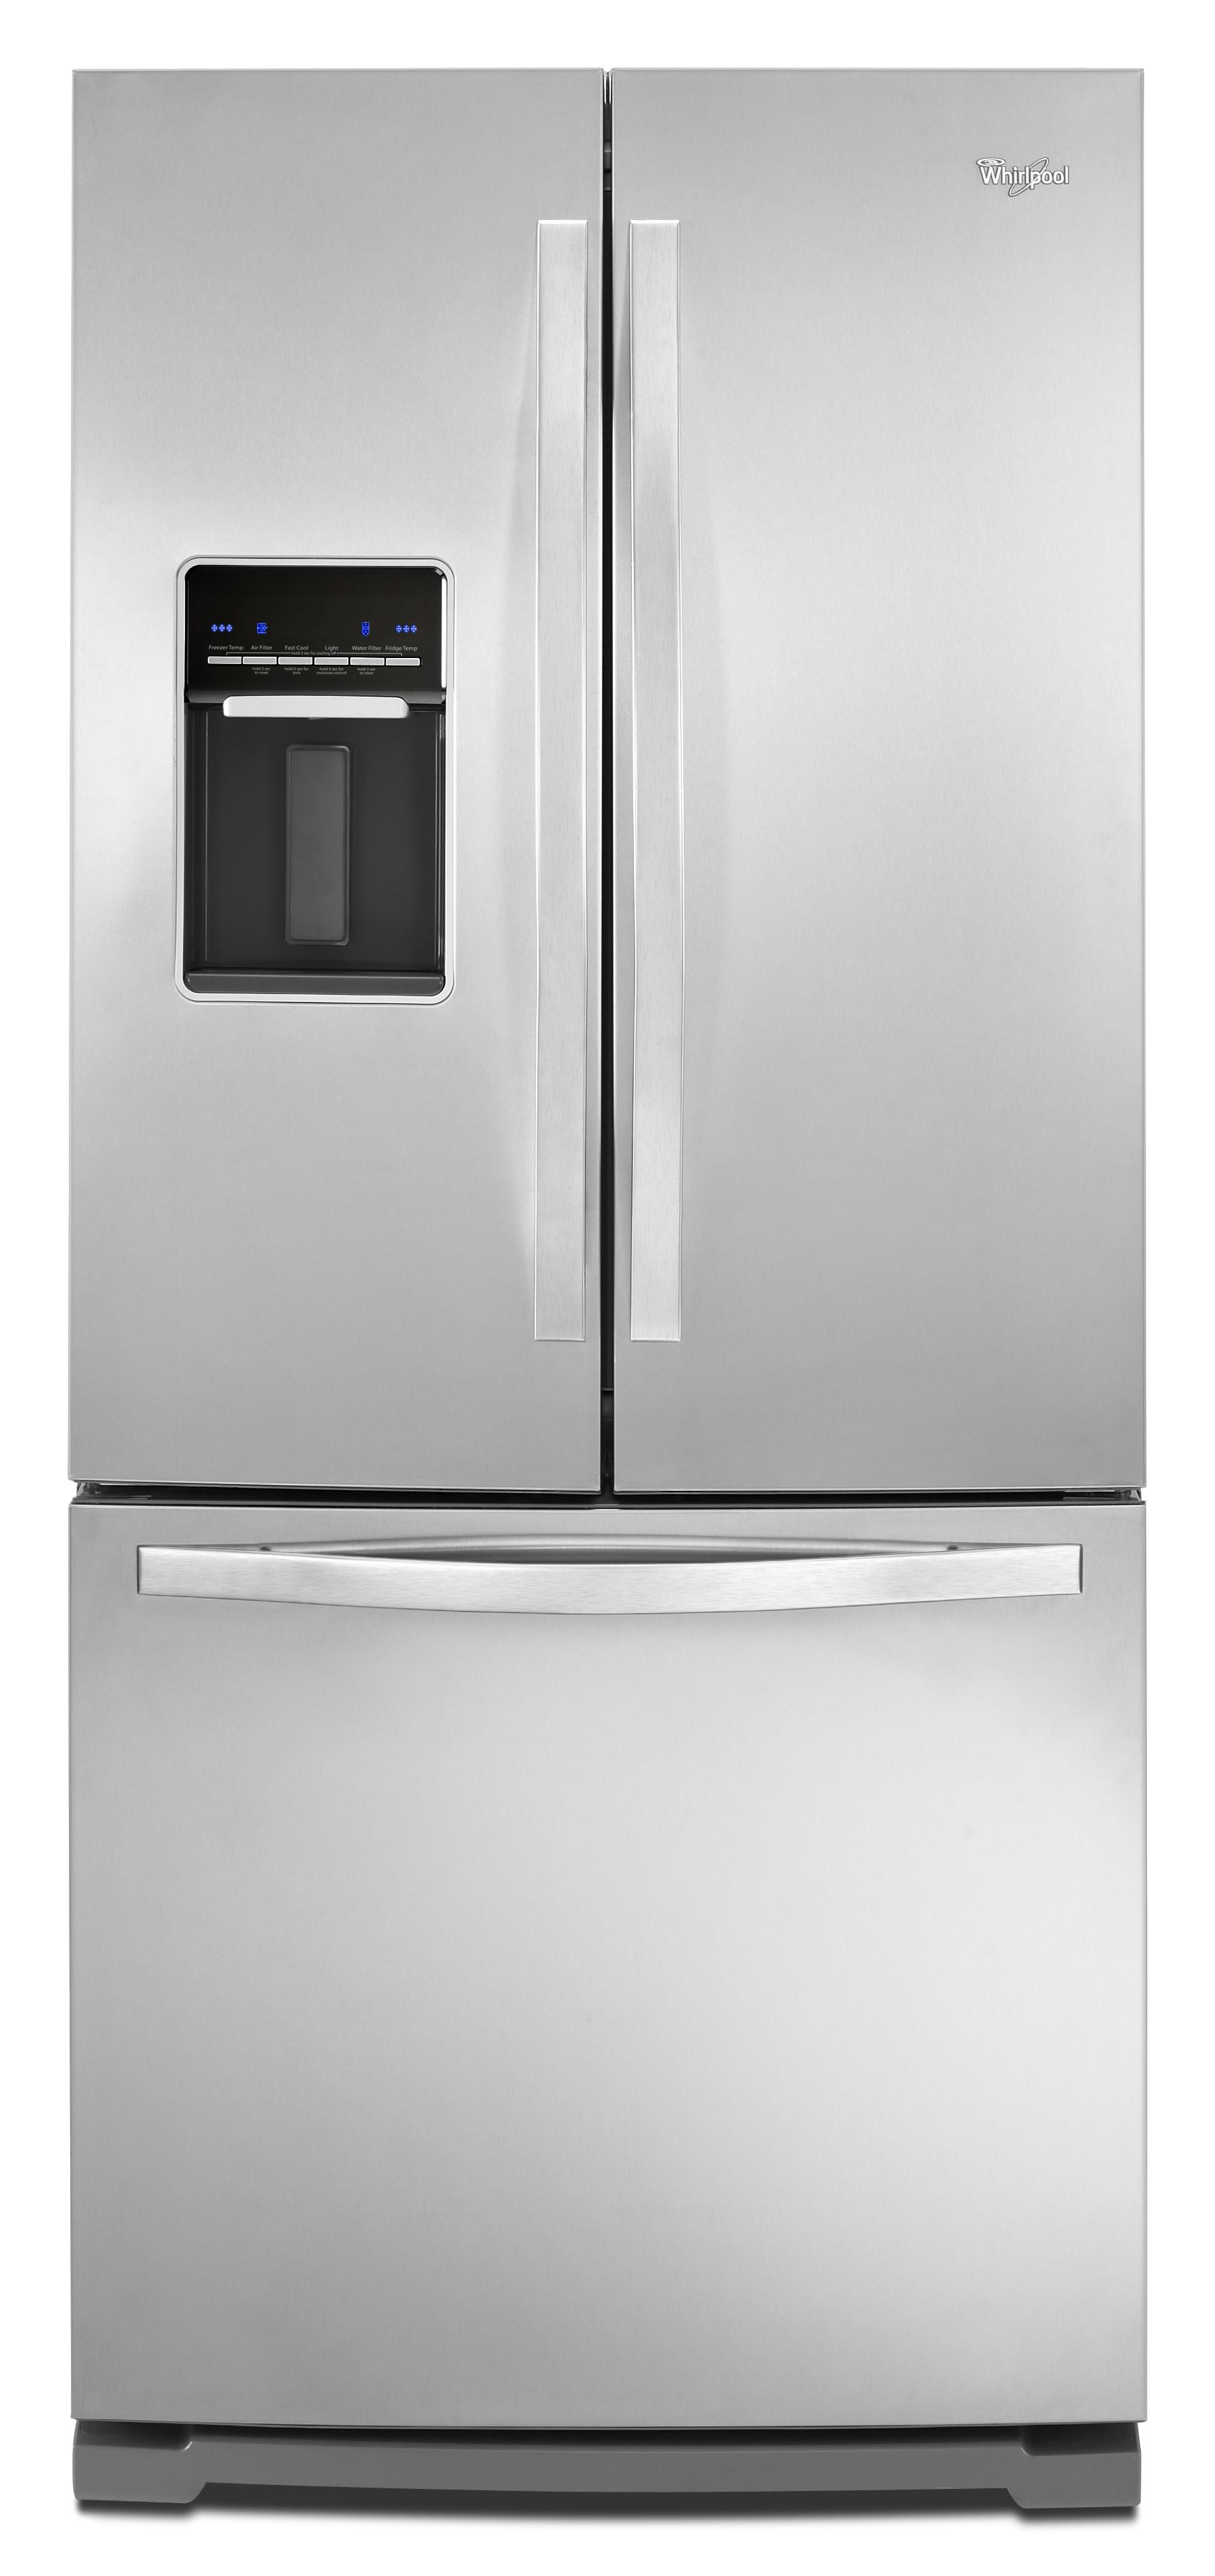 Whirlpool 19 6 cu ft french door refrigerator with for 19 cu ft french door refrigerator